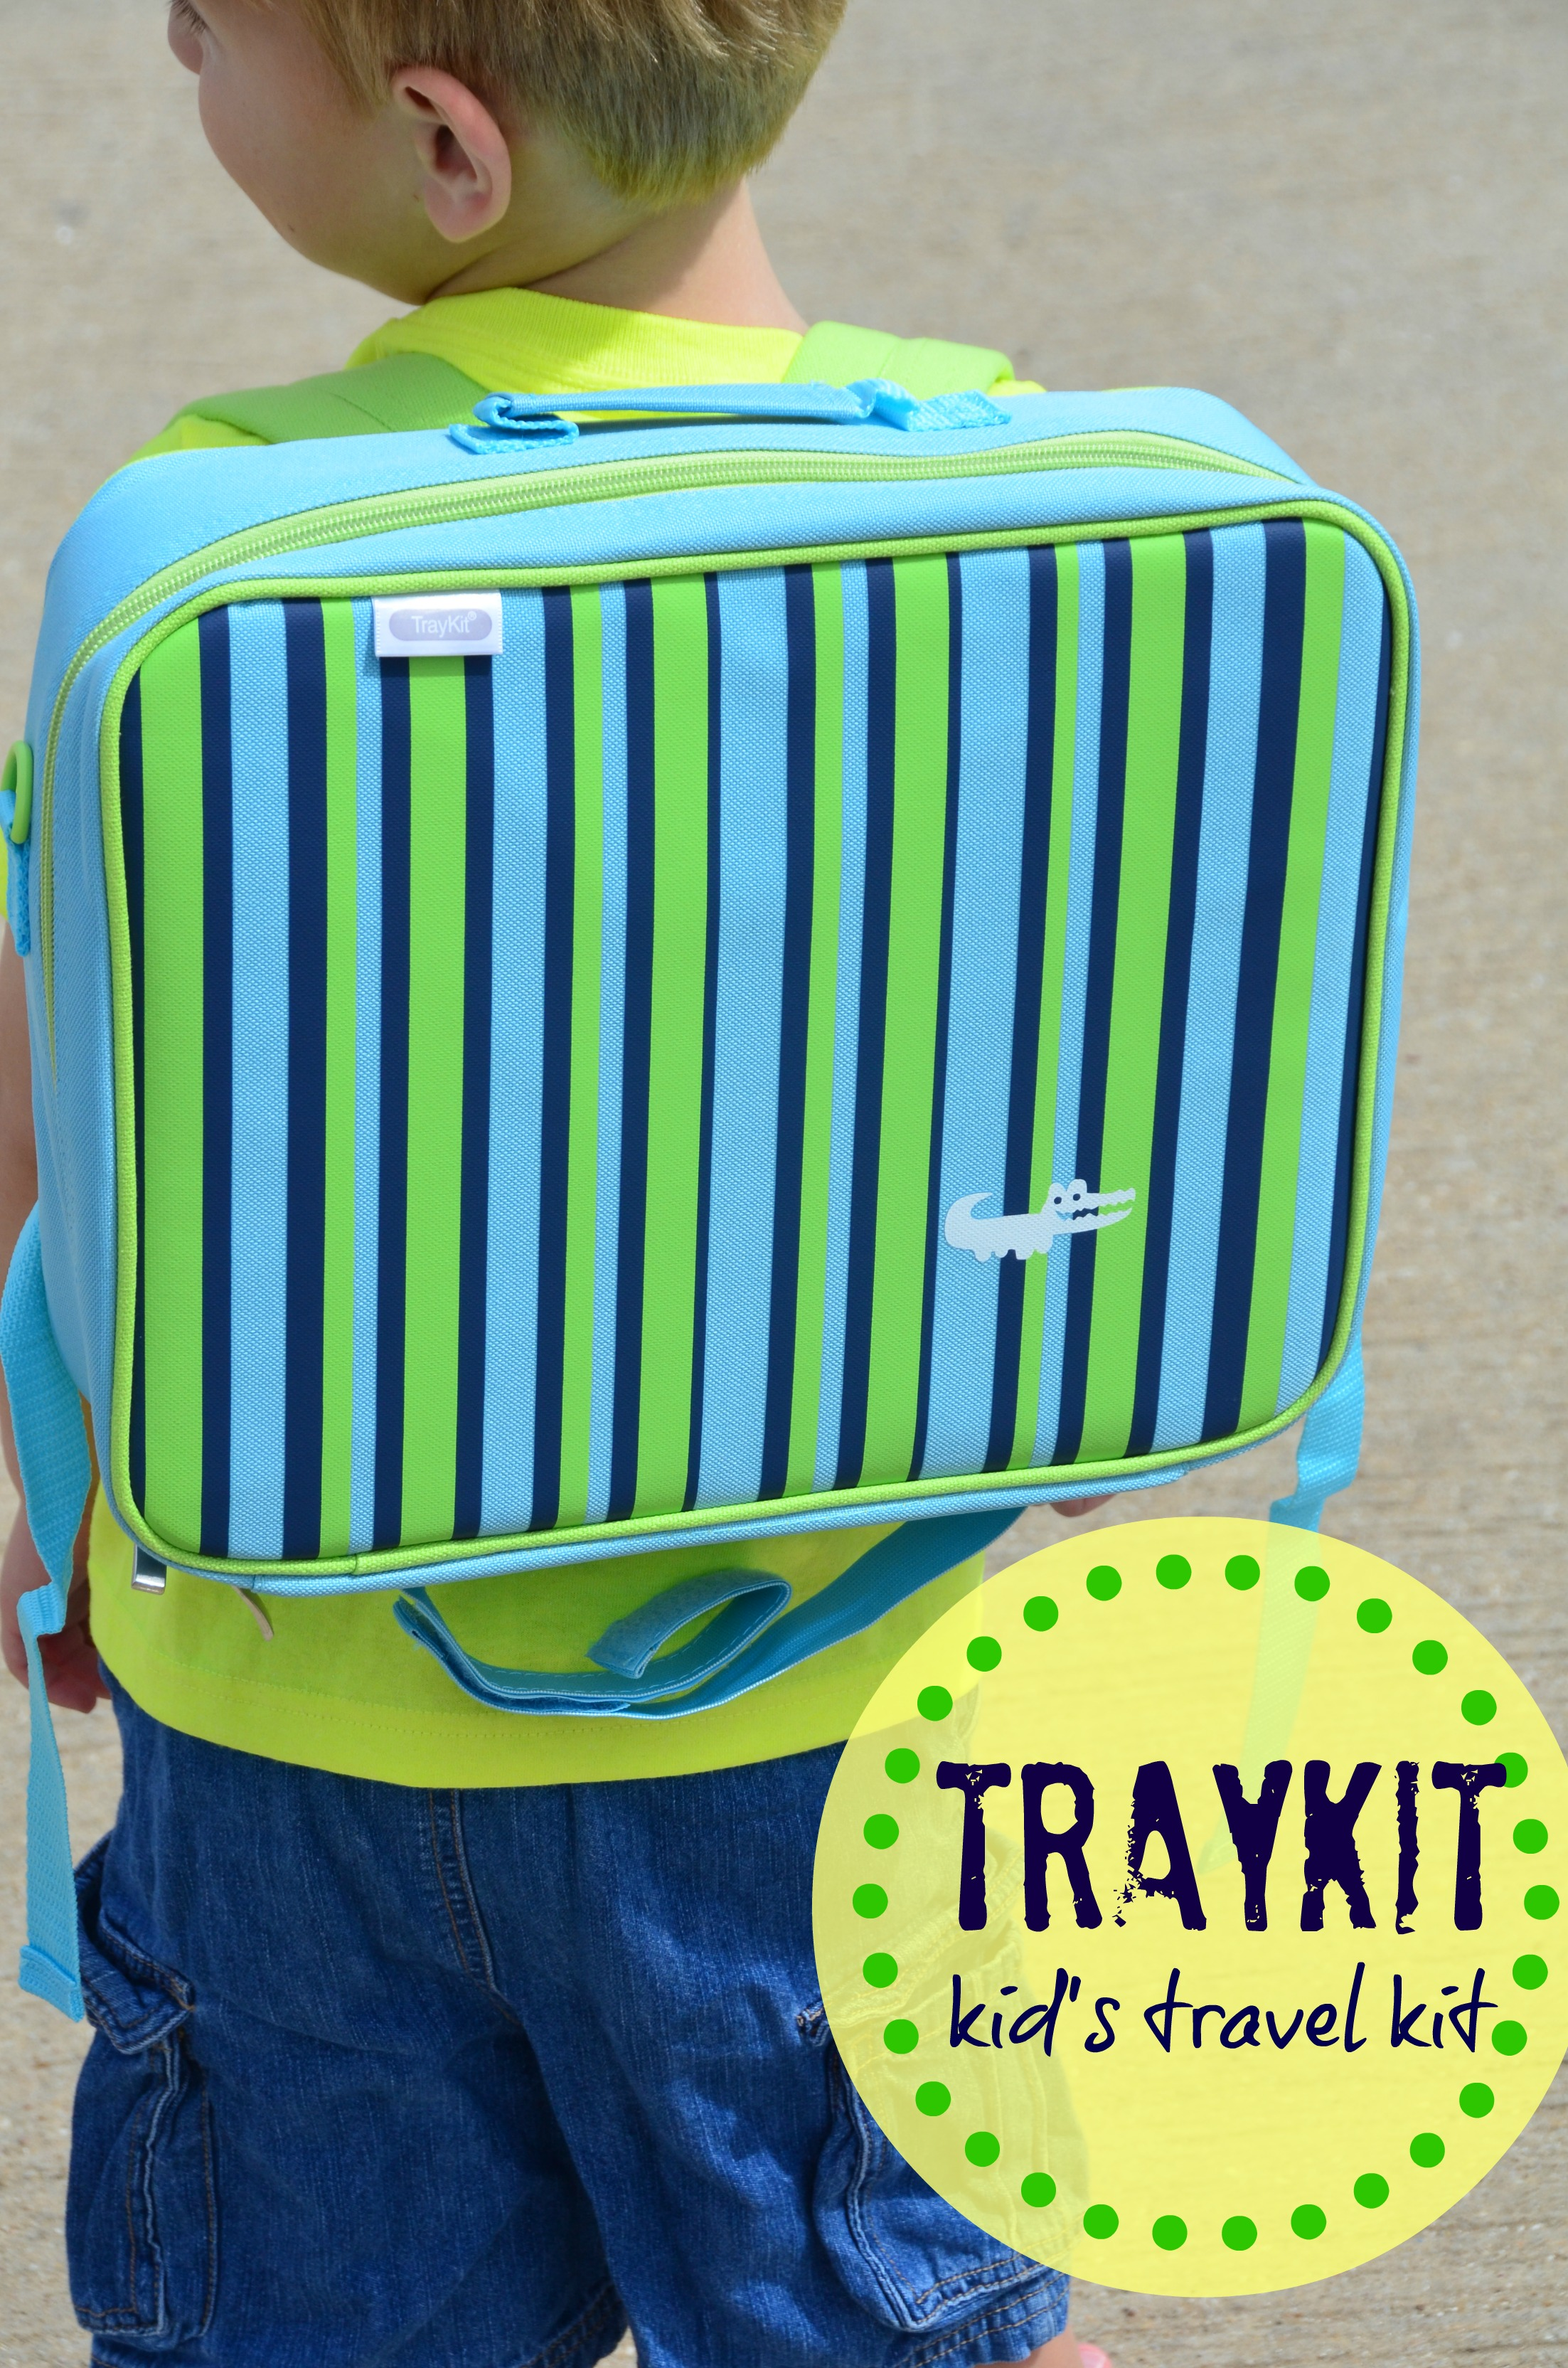 Kids Travel Bag~A Review of TrayKit - Suitcases and Sippy Cups 852489c974